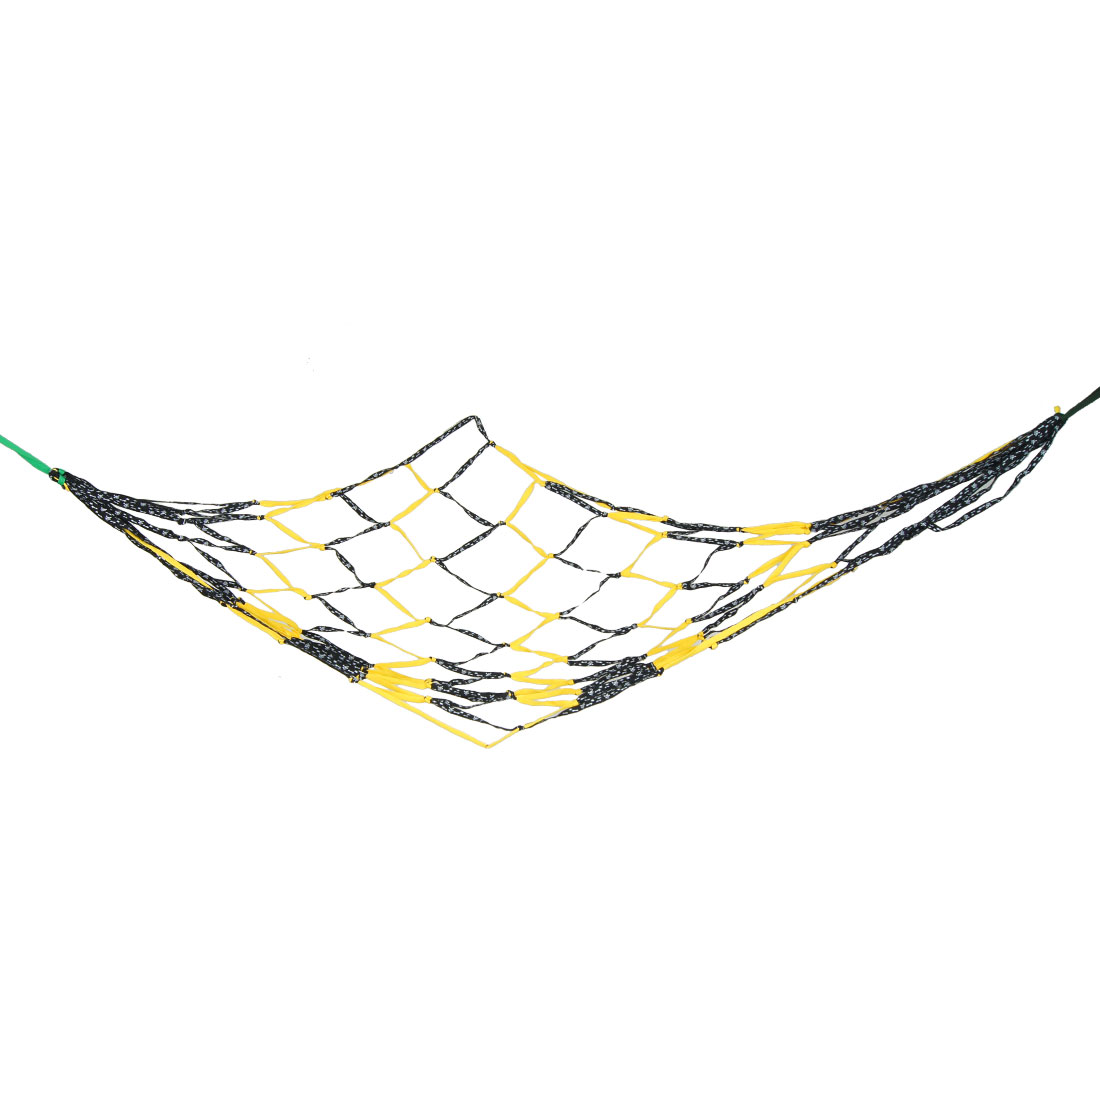 2.1M x 1.8M Swing Mesh Sleeping Bed Hang Hammock Black Yellow for Traveling